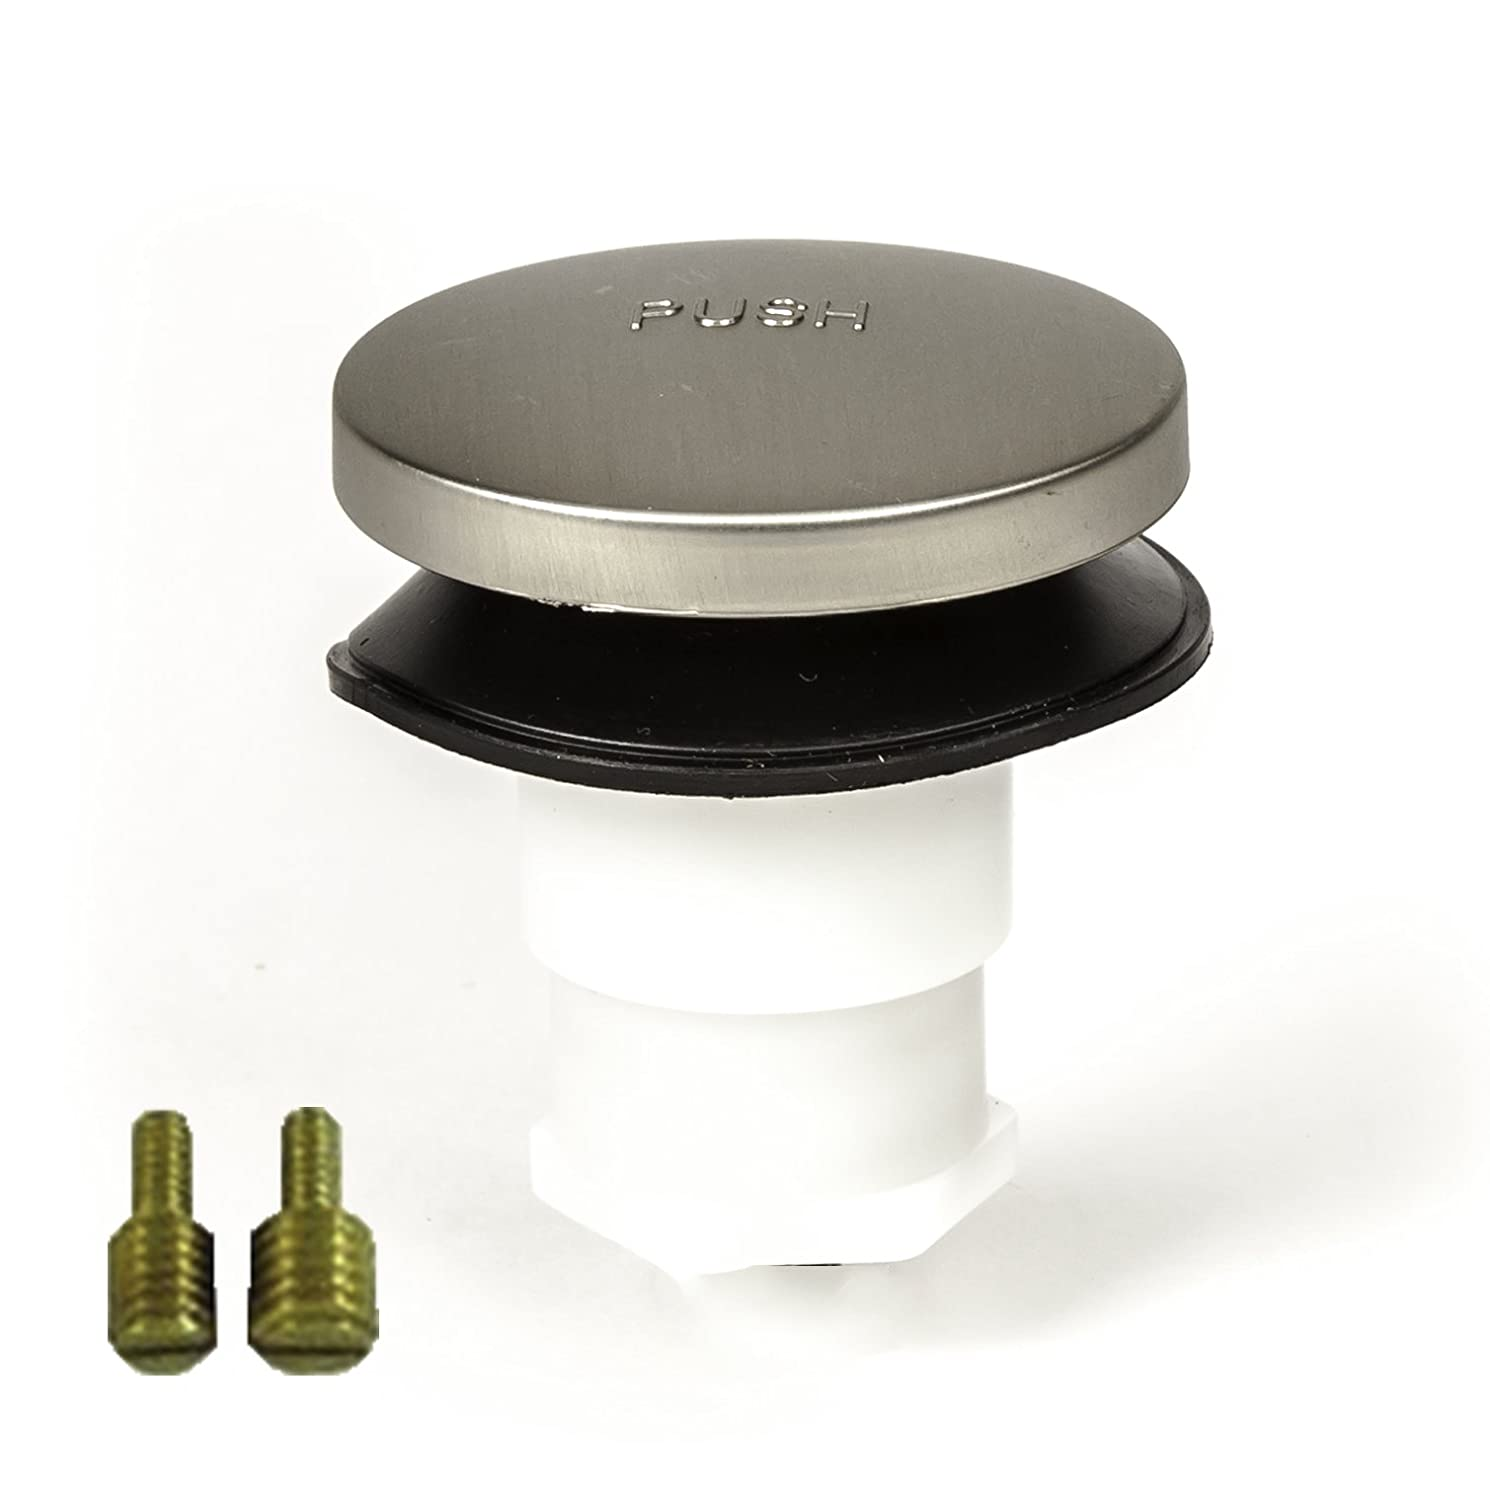 """PF WaterWorks PF0935-BN Universal Touch (Tip Toe or Foot Actuated) Bathtub/Bath Tub Drain Stopper Includes 3/8"""" and 5/16"""" Fittings, No No Hair Catcher, Brushed Nickel"""